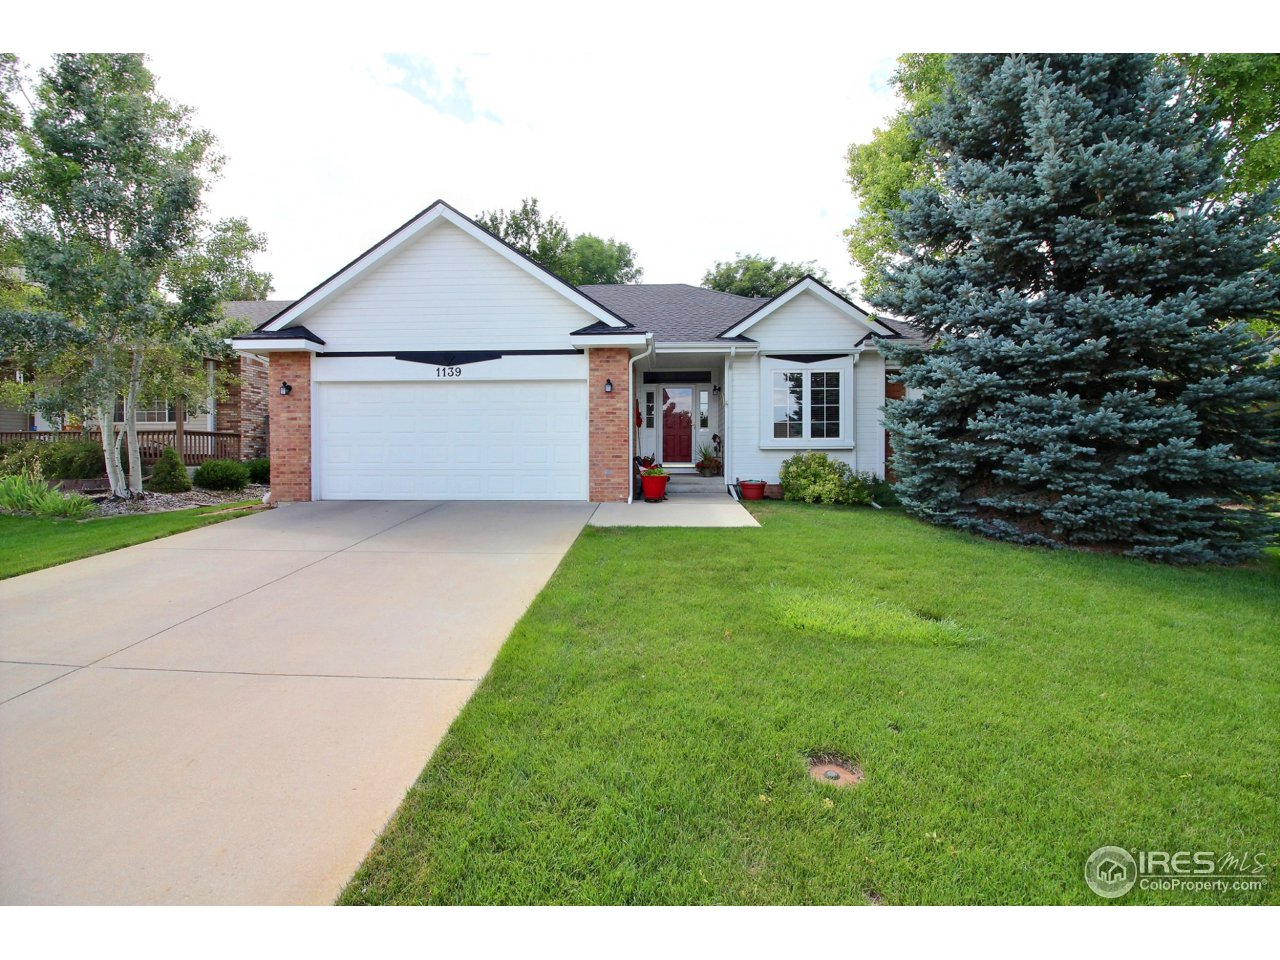 1139 52nd Ave, Greeley CO 80634